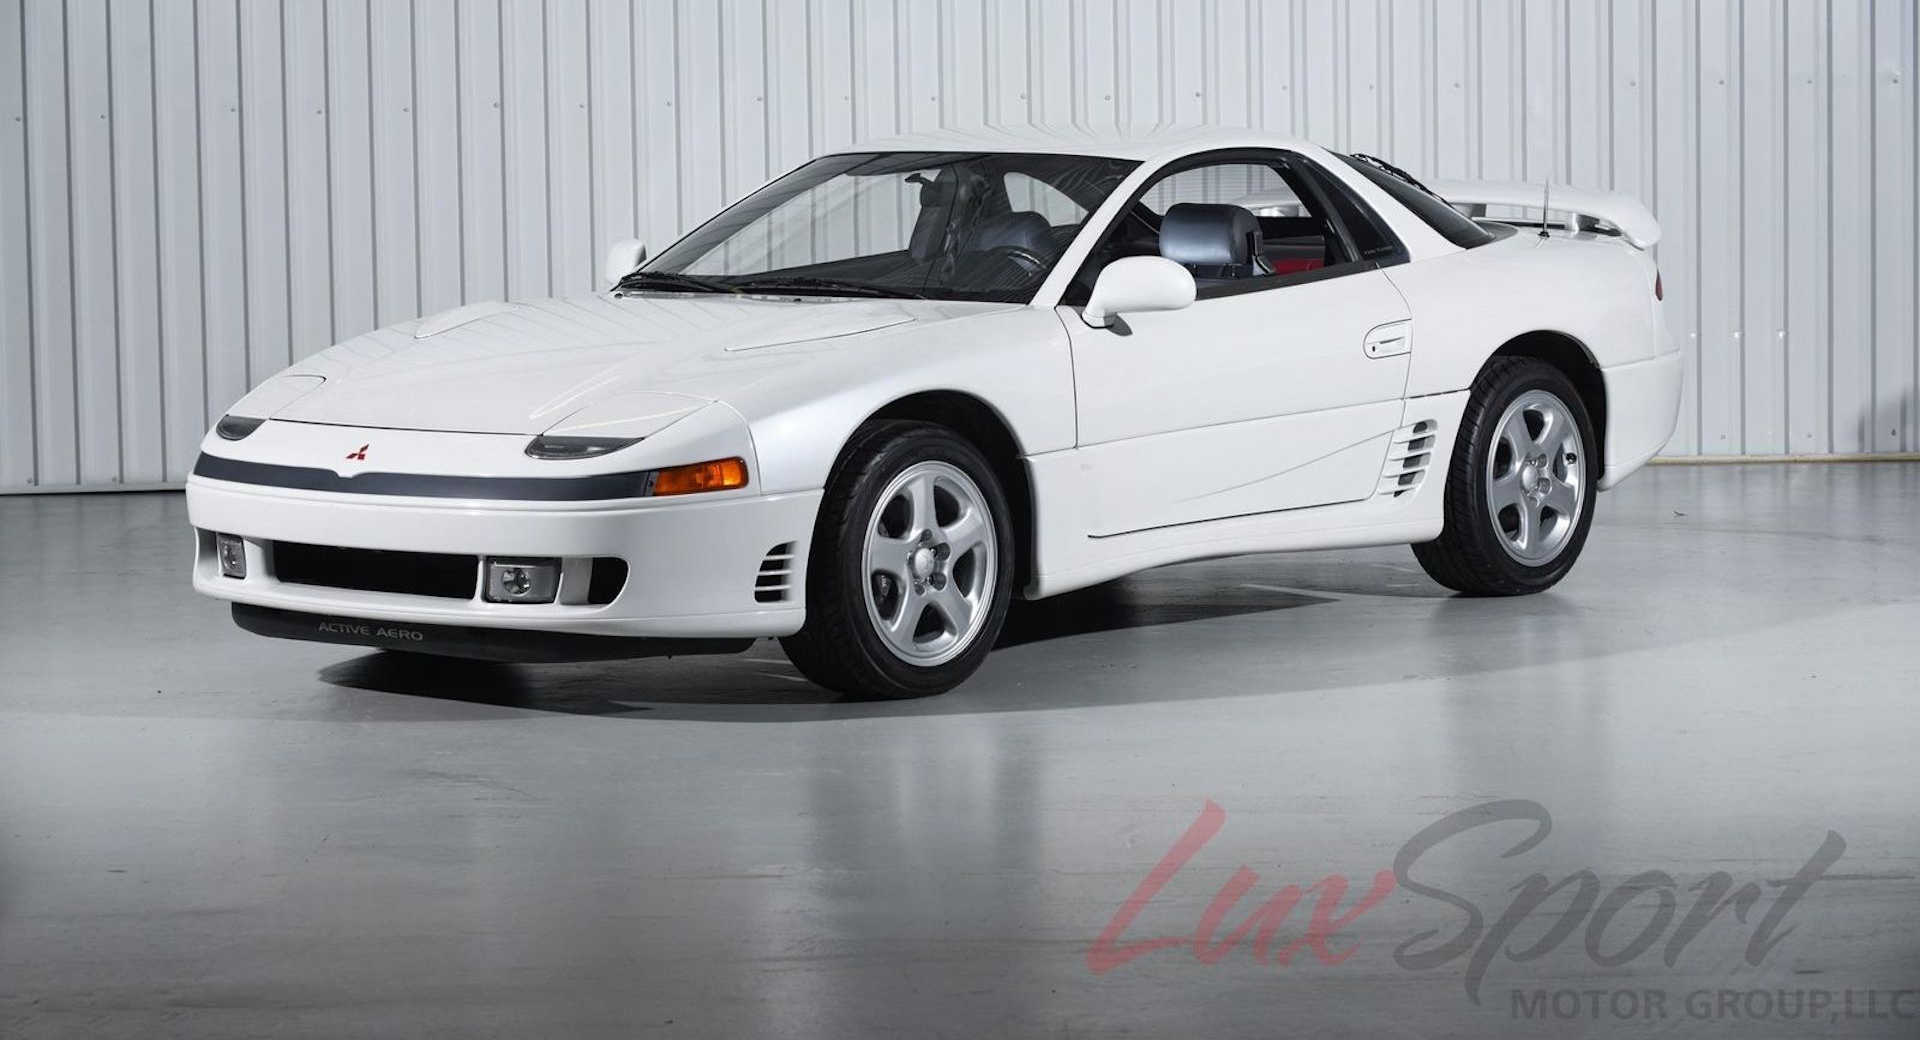 New Mitsubishi 3000gt >> Mint 1991 Mitsubishi 3000GT VR-4 Brims With High Tech, But Is It Worth $50k? | Carscoops